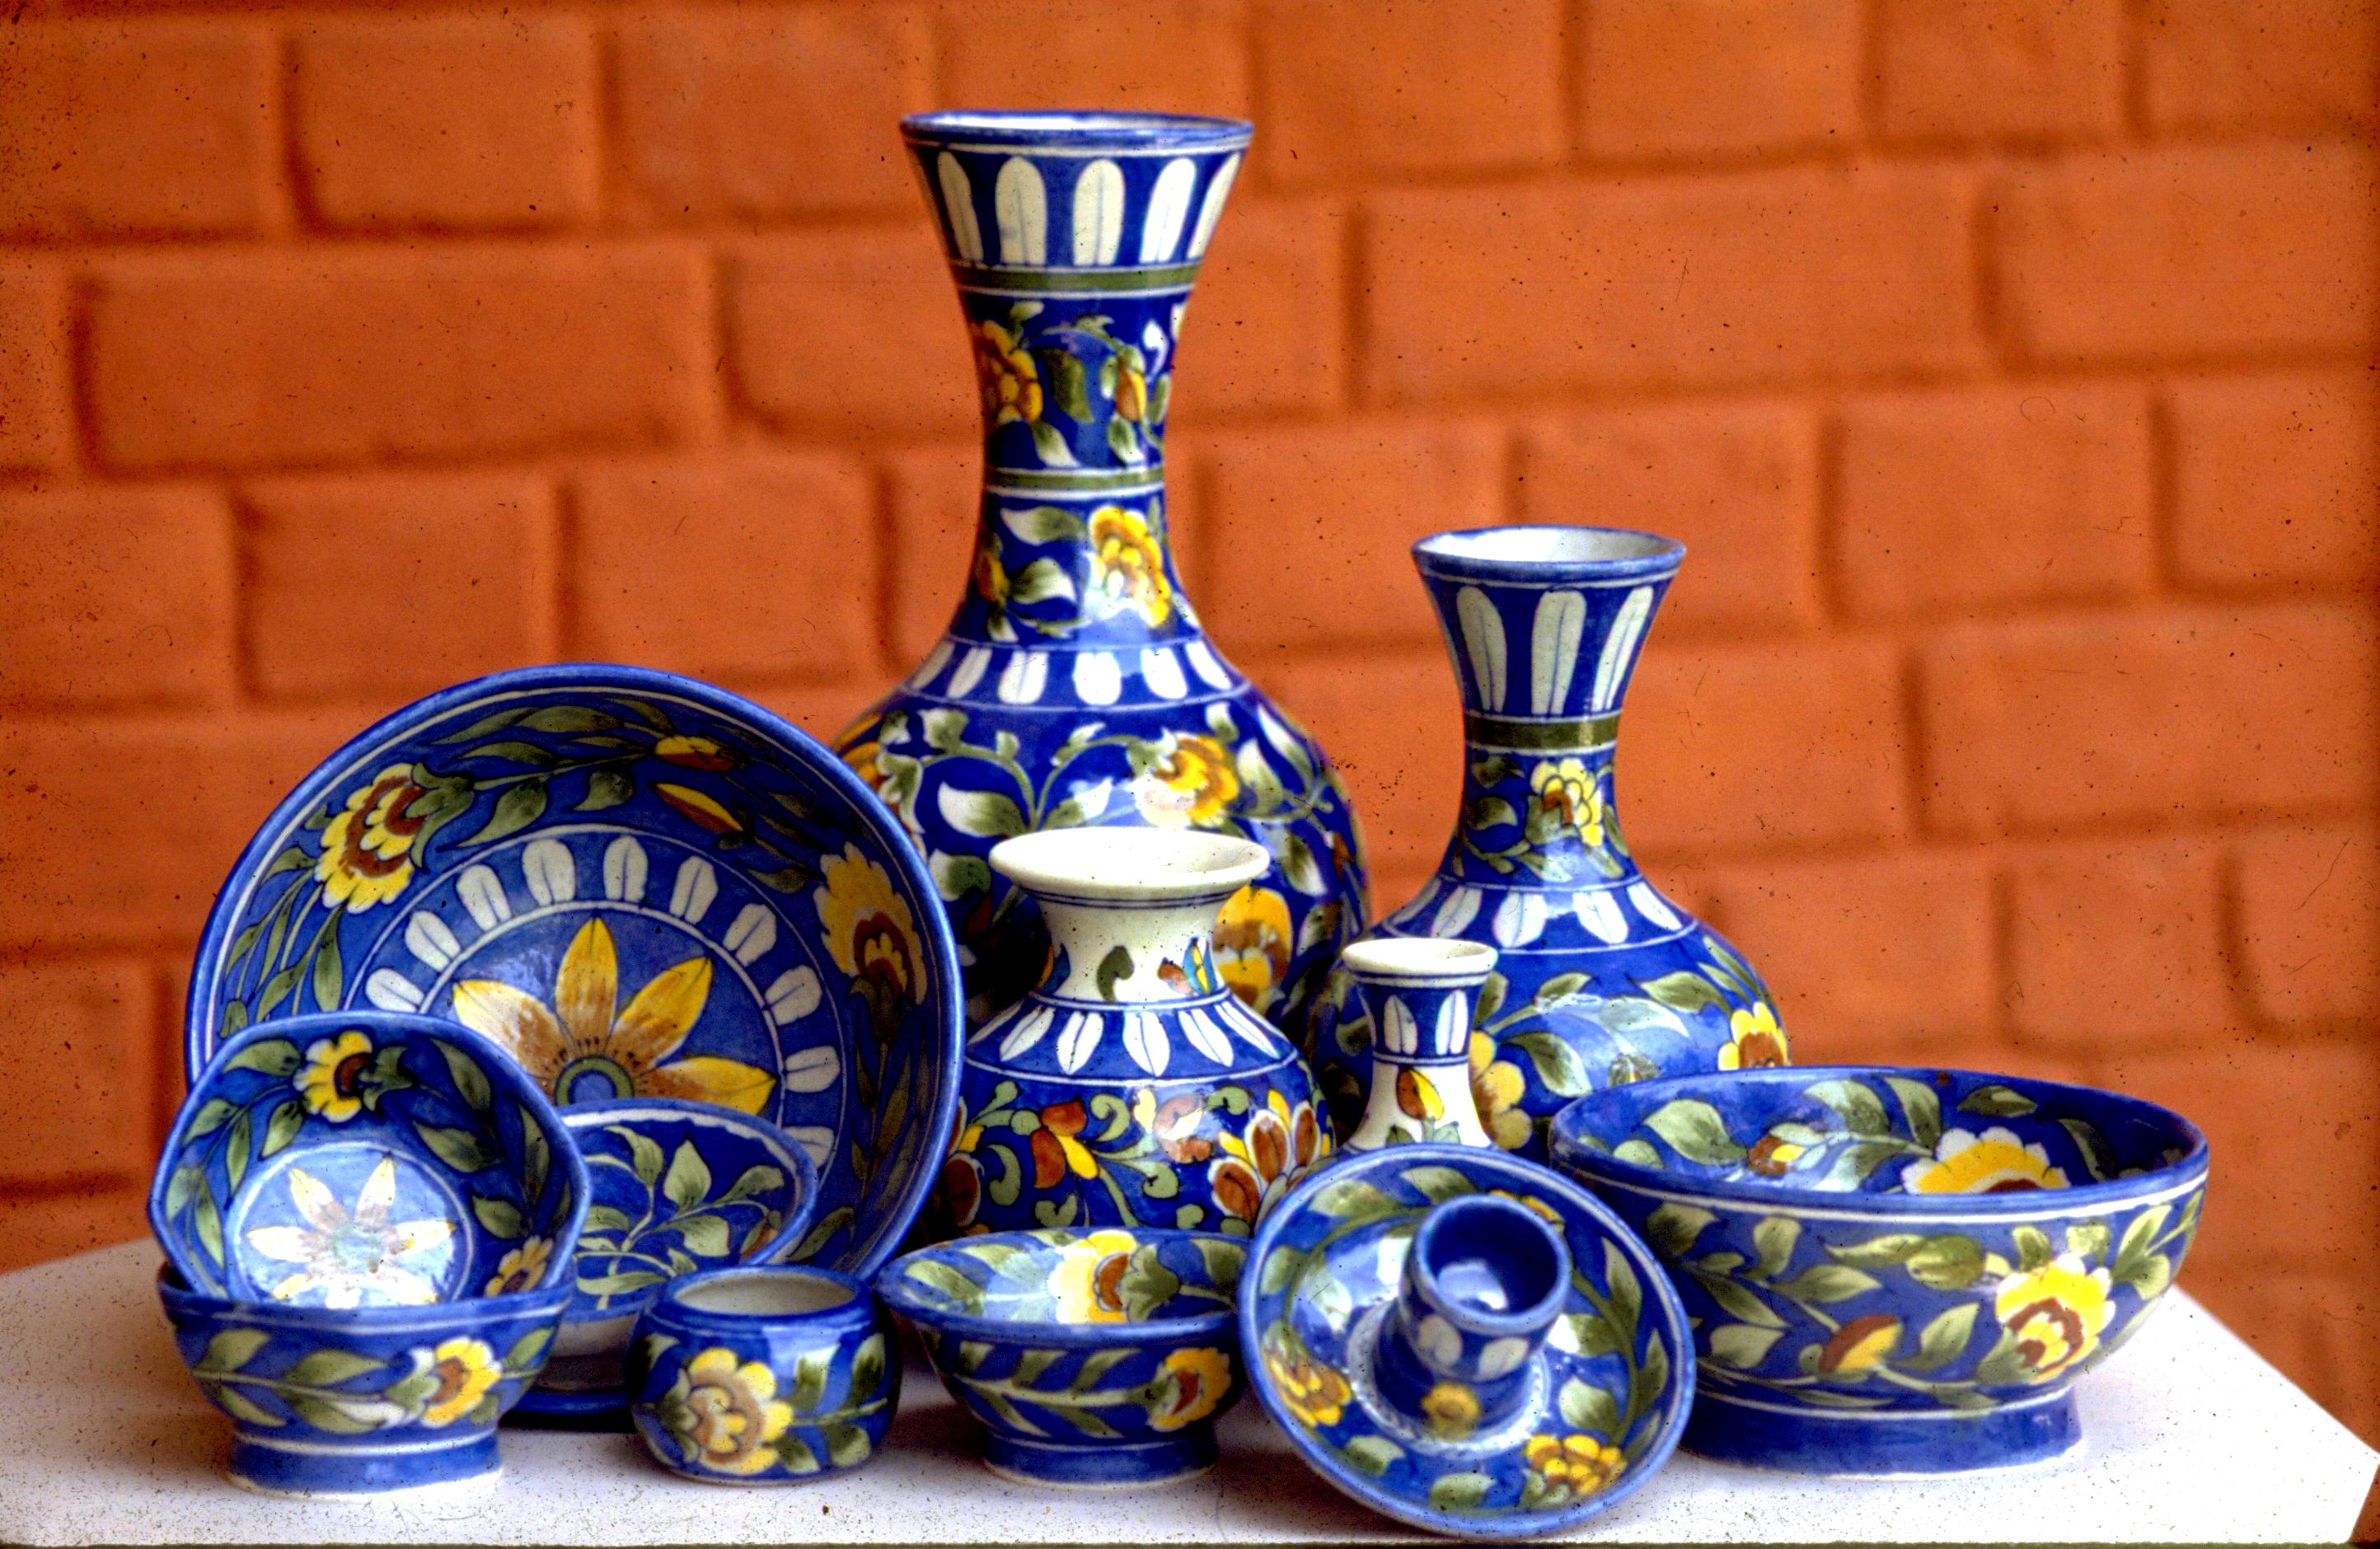 Blue Pottery products